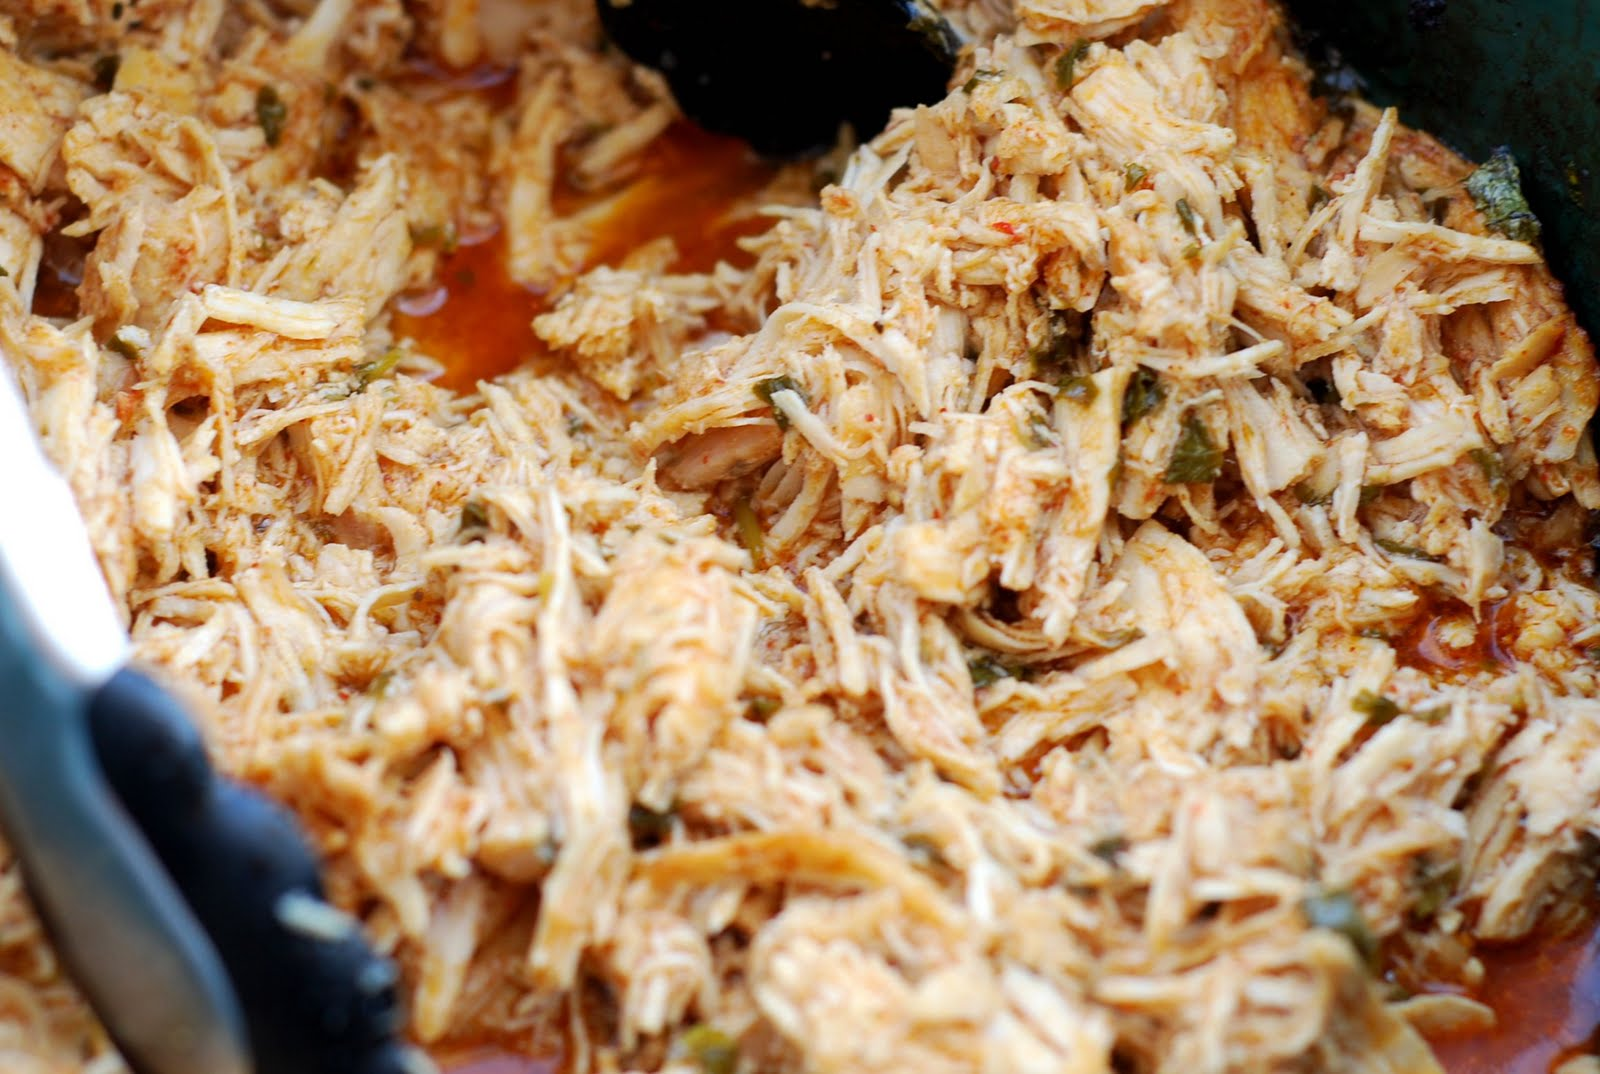 See Jane in the kitchen: Crock Pot Mexican Chicken